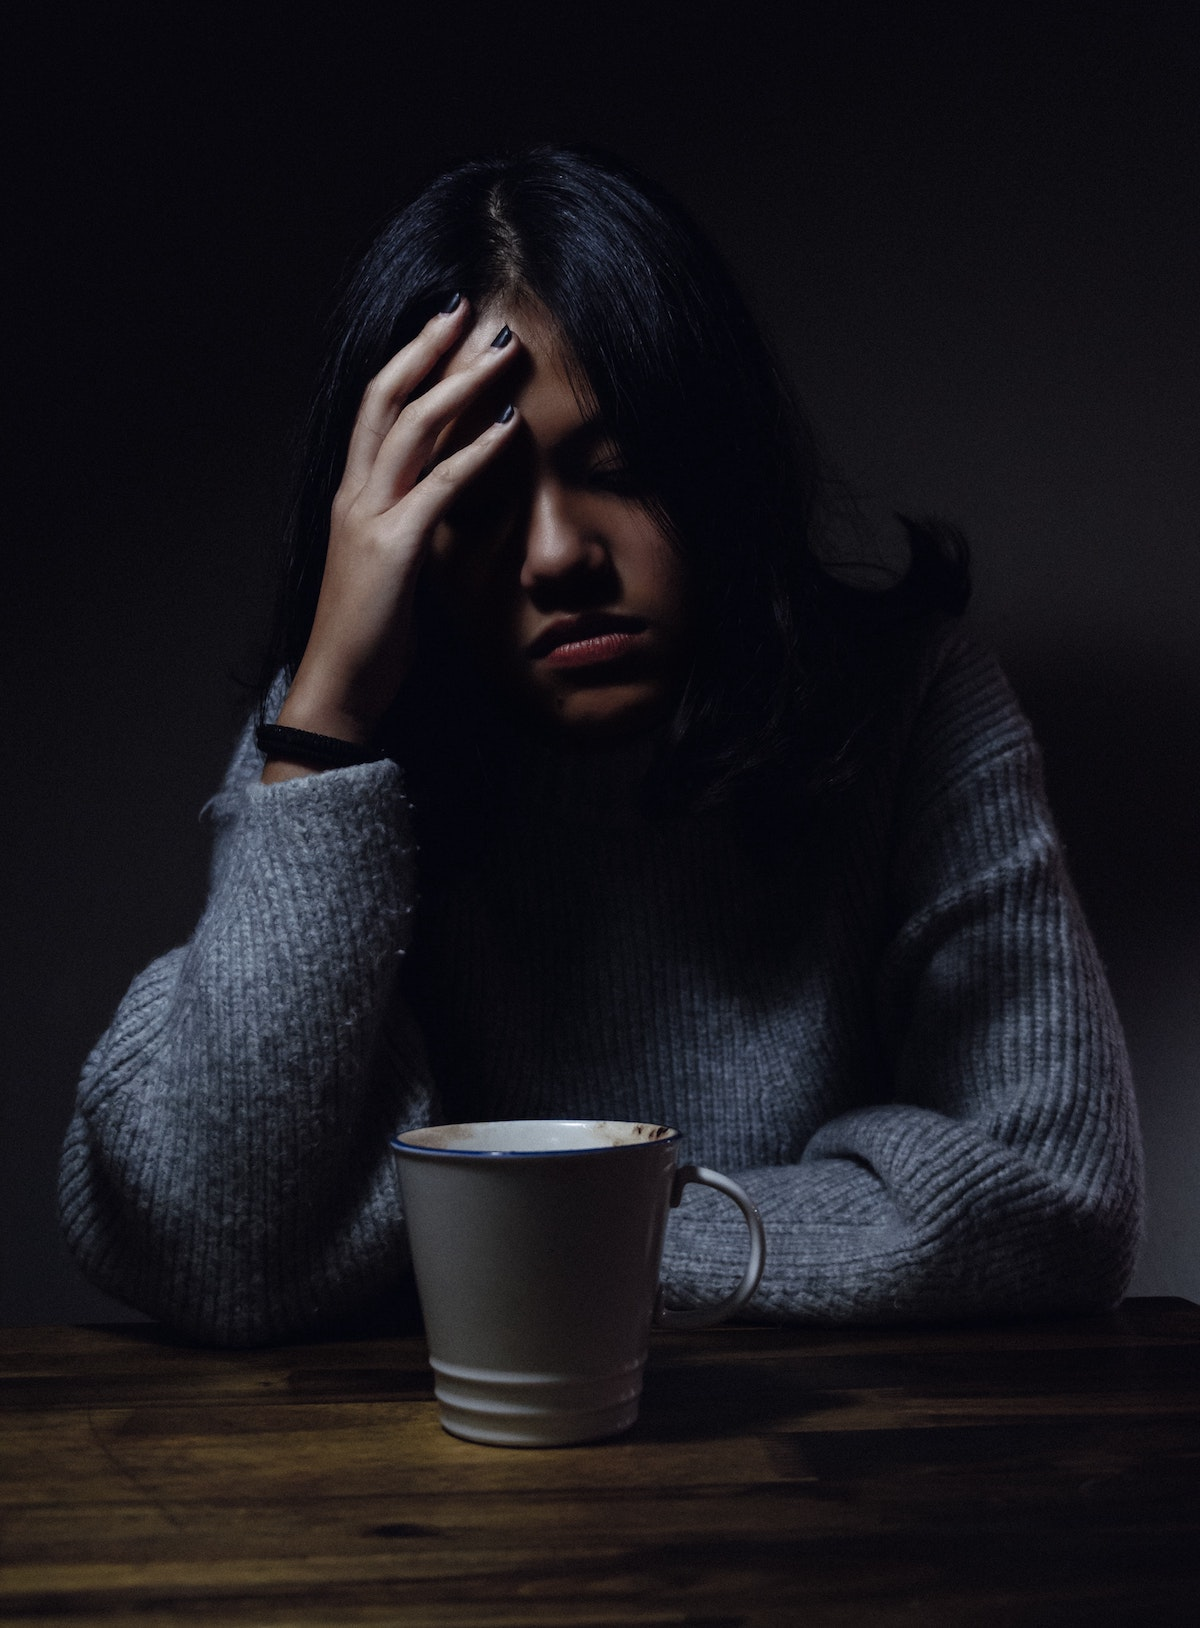 girl at a table with a cup of coffee